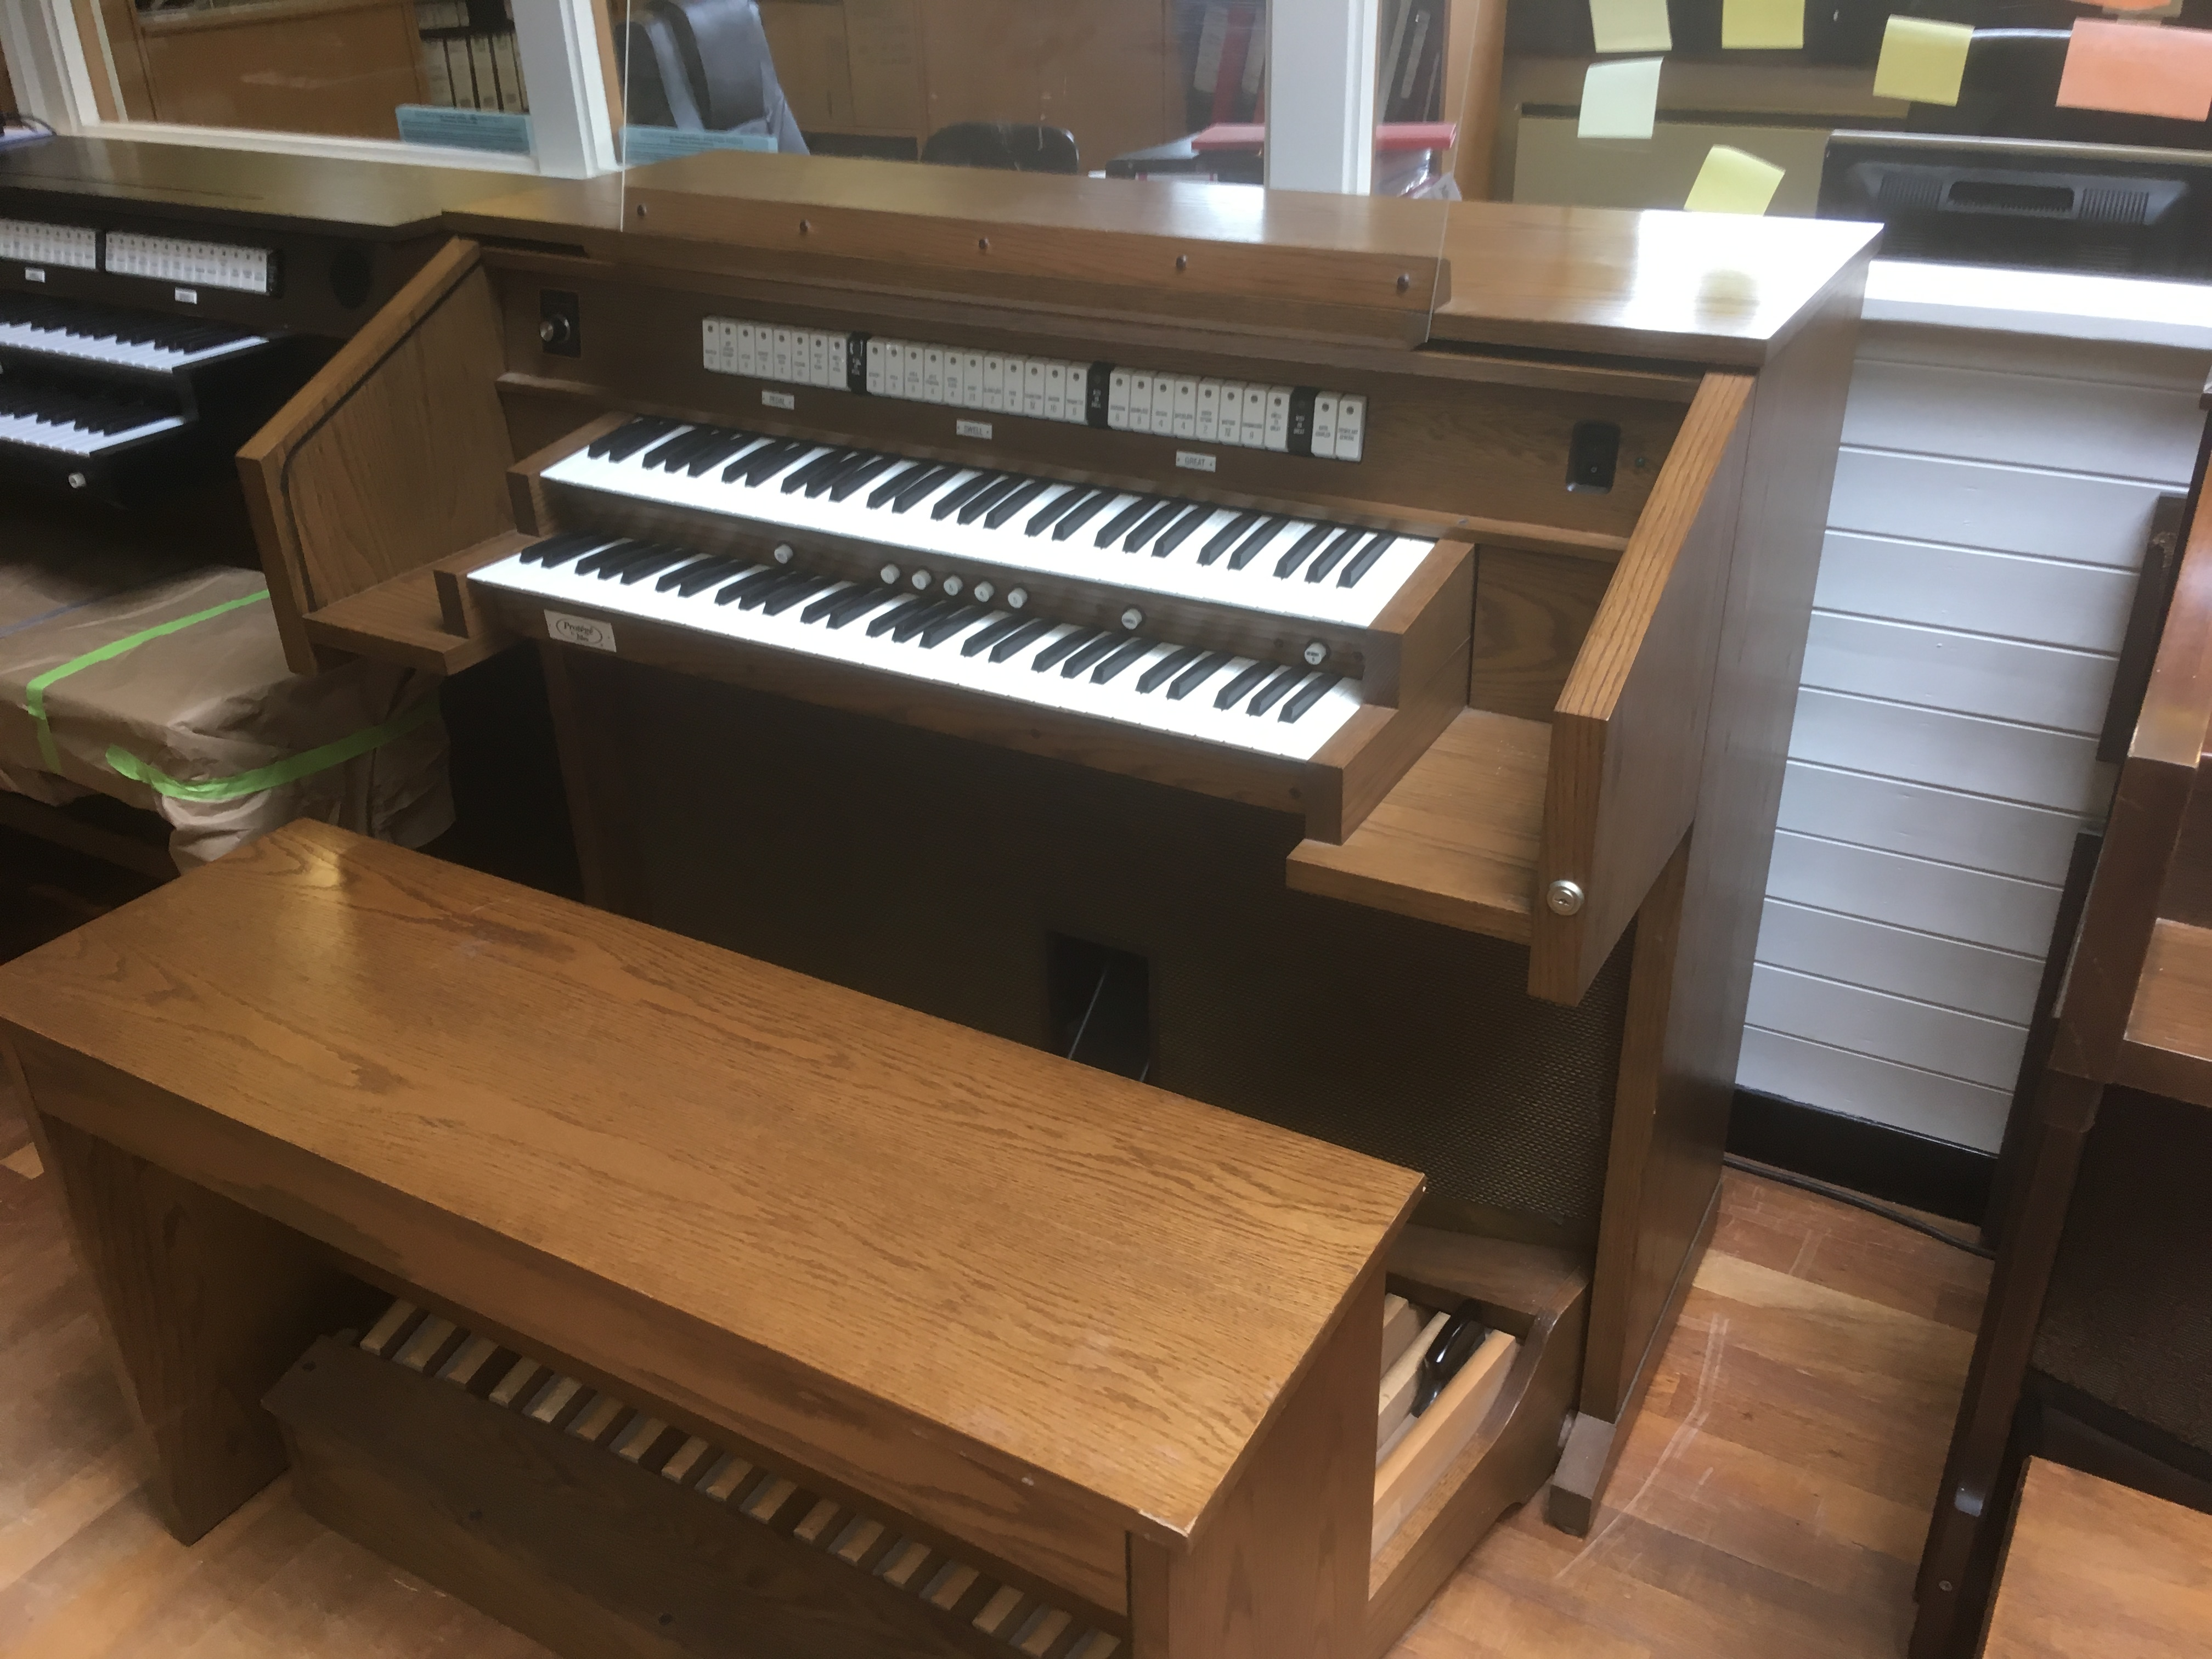 Allen OrgansPre-owned and ex-demonstration organs - Allen Organs